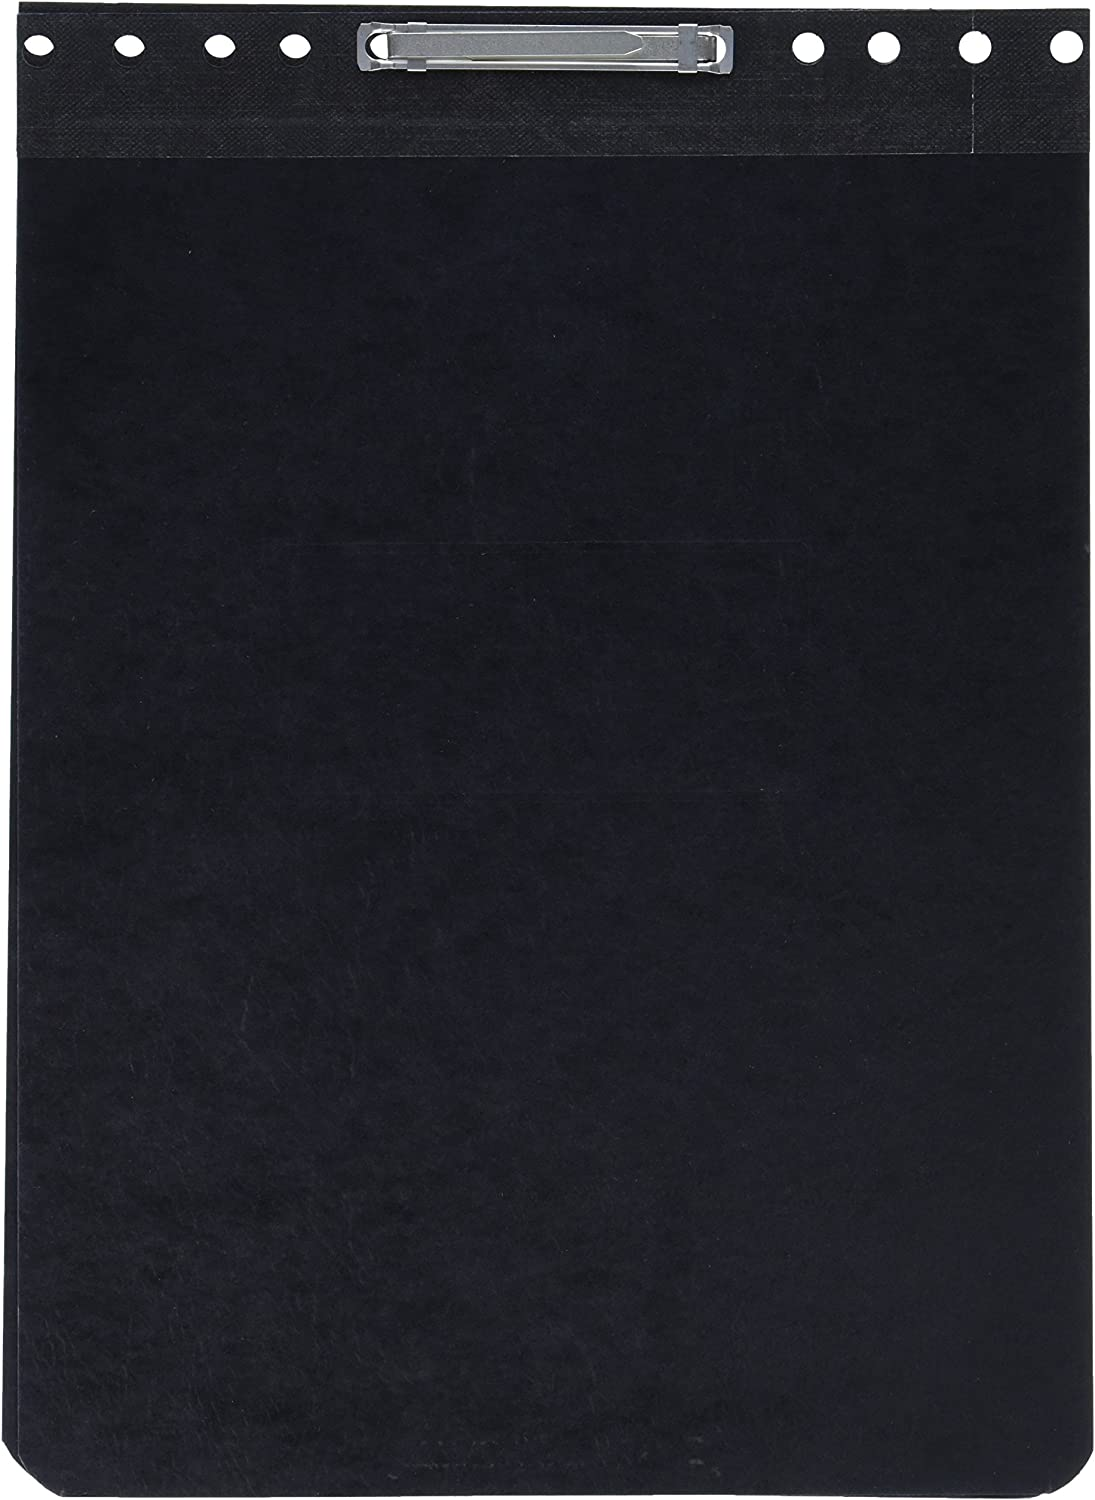 ACCO PRESSTEX Report Covers, Top Binding for Letter Size Sheets, 2 Inch Capacity, Black, 2 Pack (A7022271) : Business Report Covers : Office Products